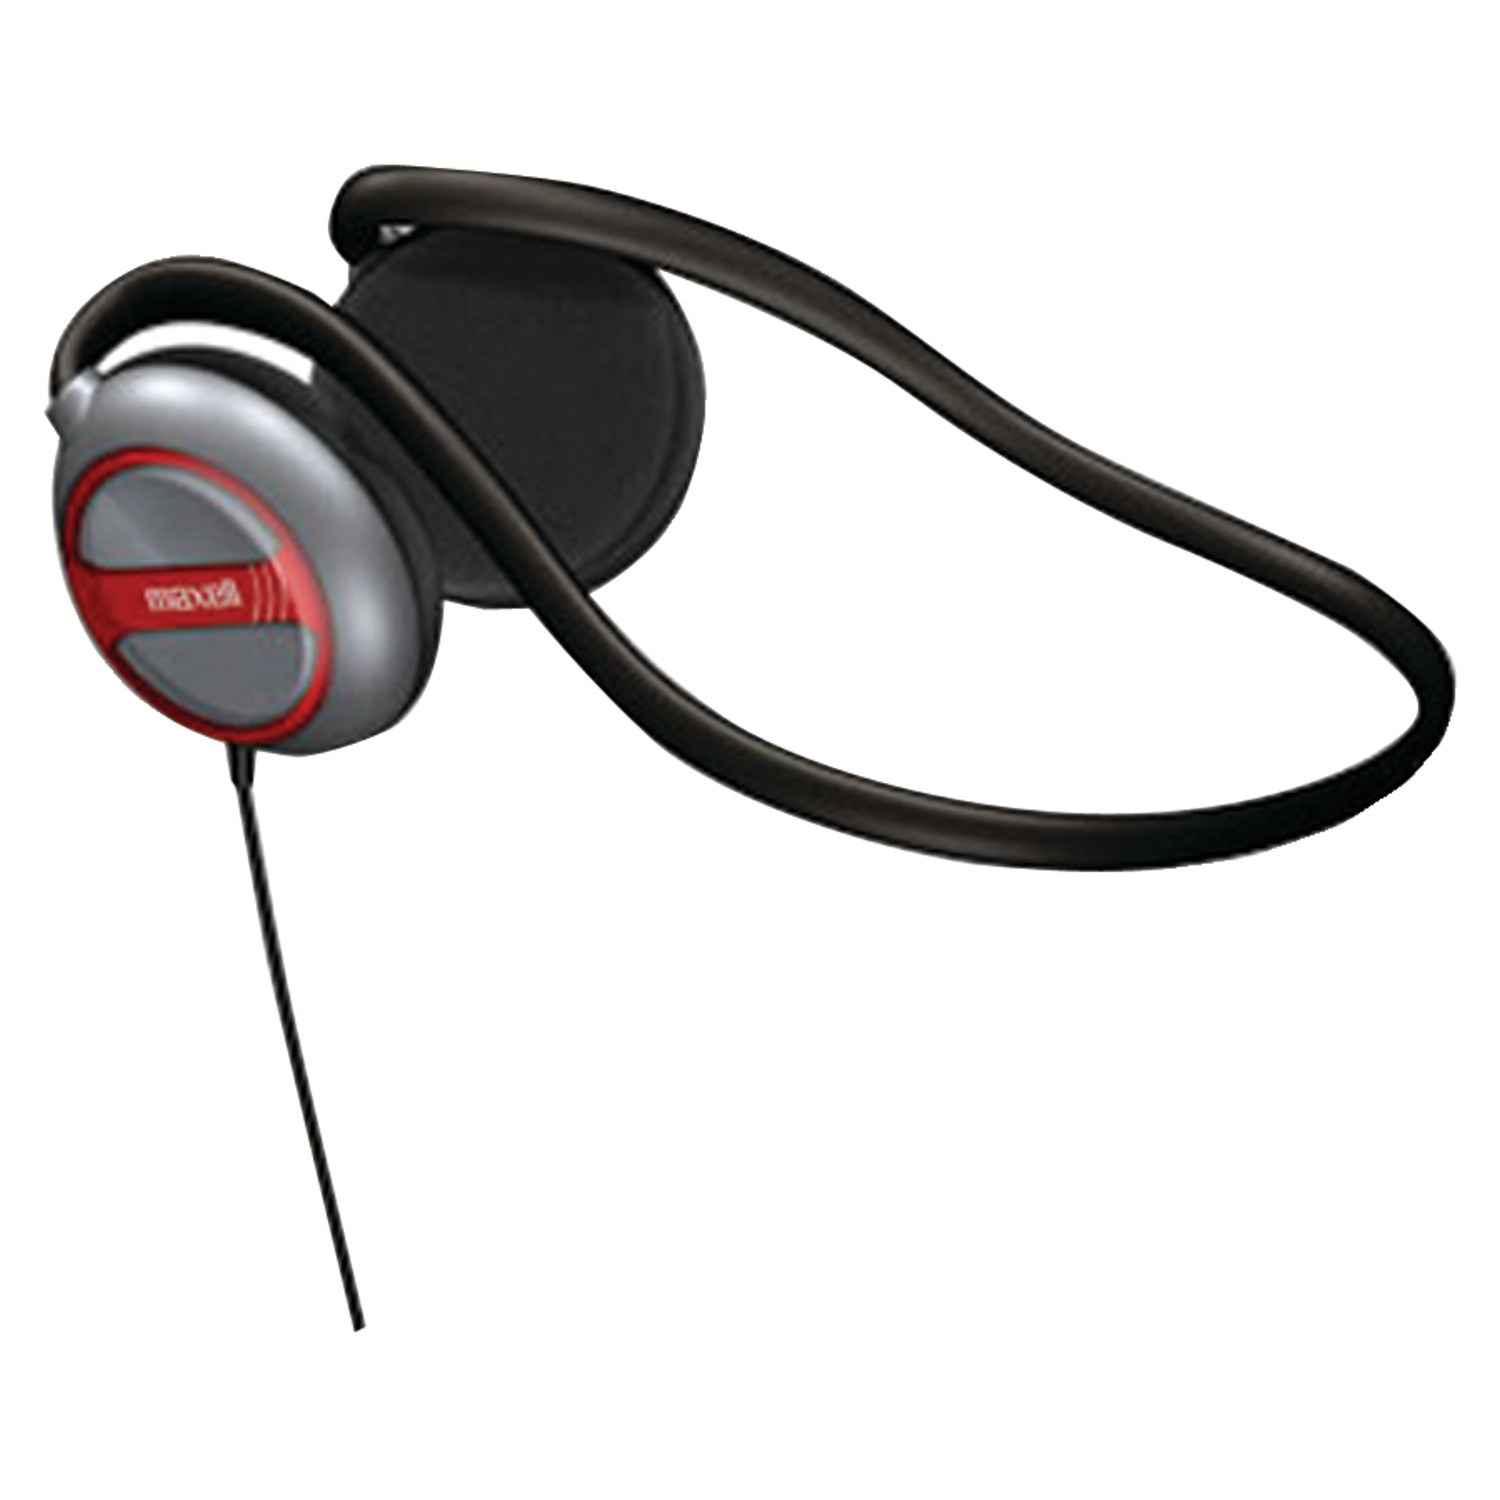 Maxell 190316 Behind-the-Neck Stereo Headphones with Swivel Ear Cups